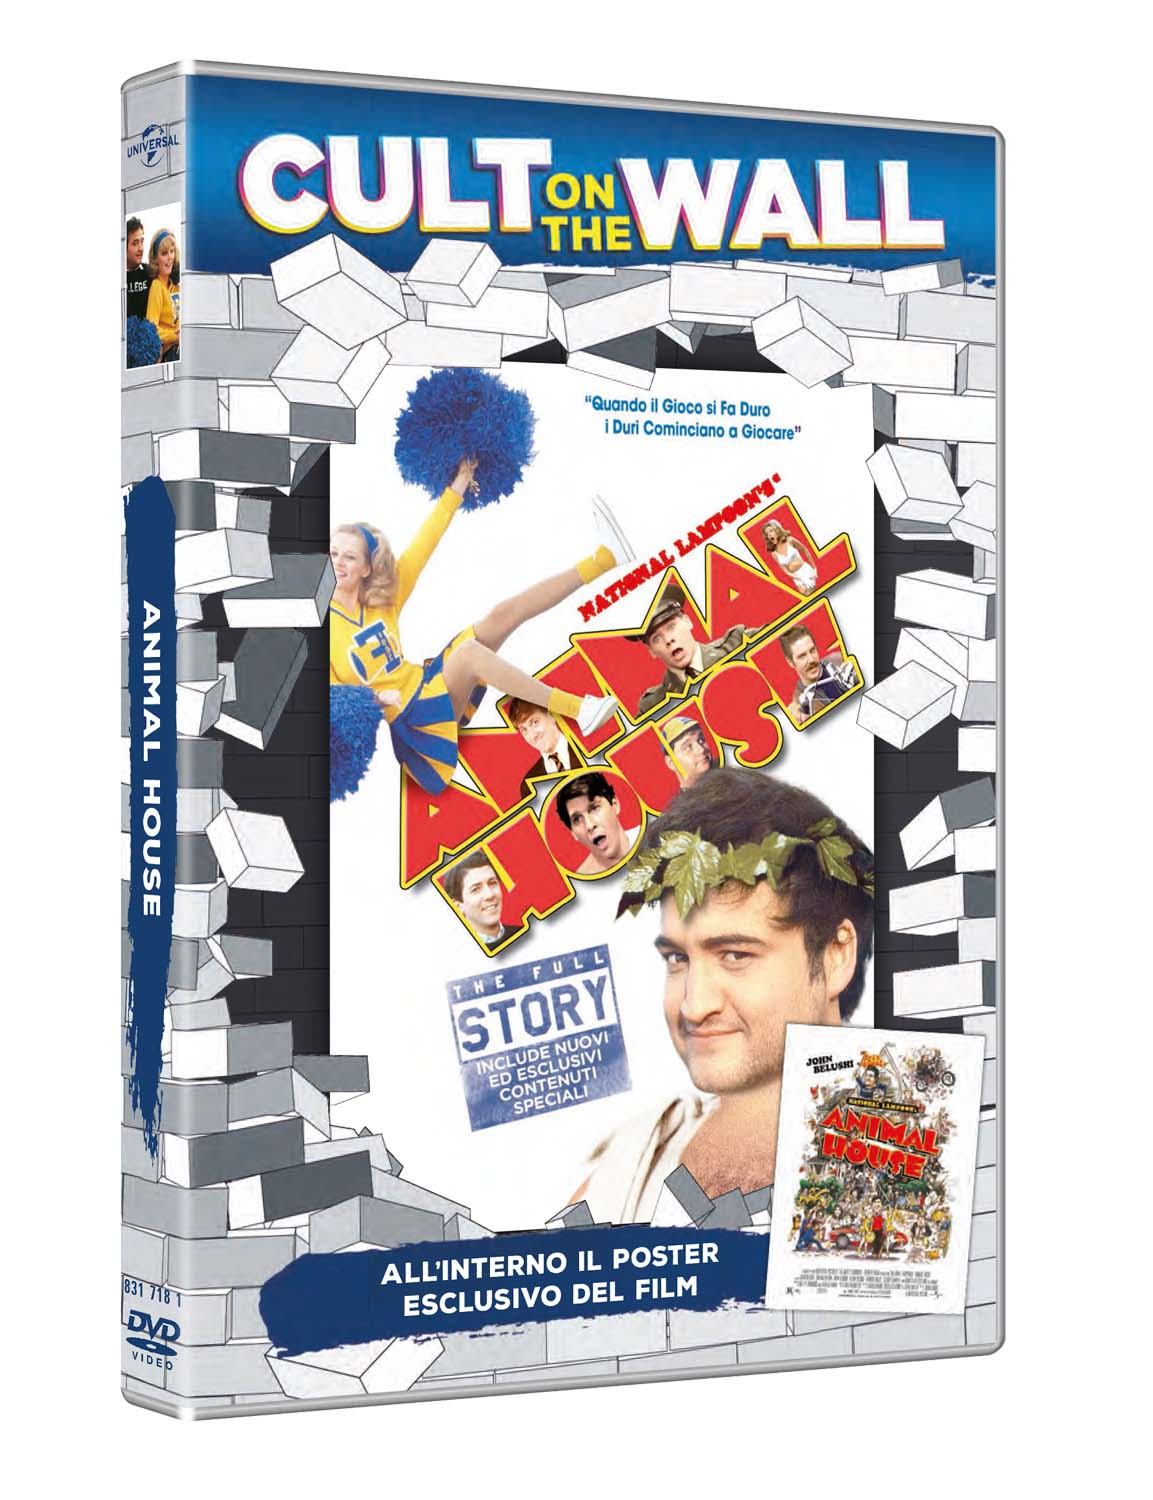 ANIMAL HOUSE (CULT ON THE WALL) (DVD+POSTER) (DVD)